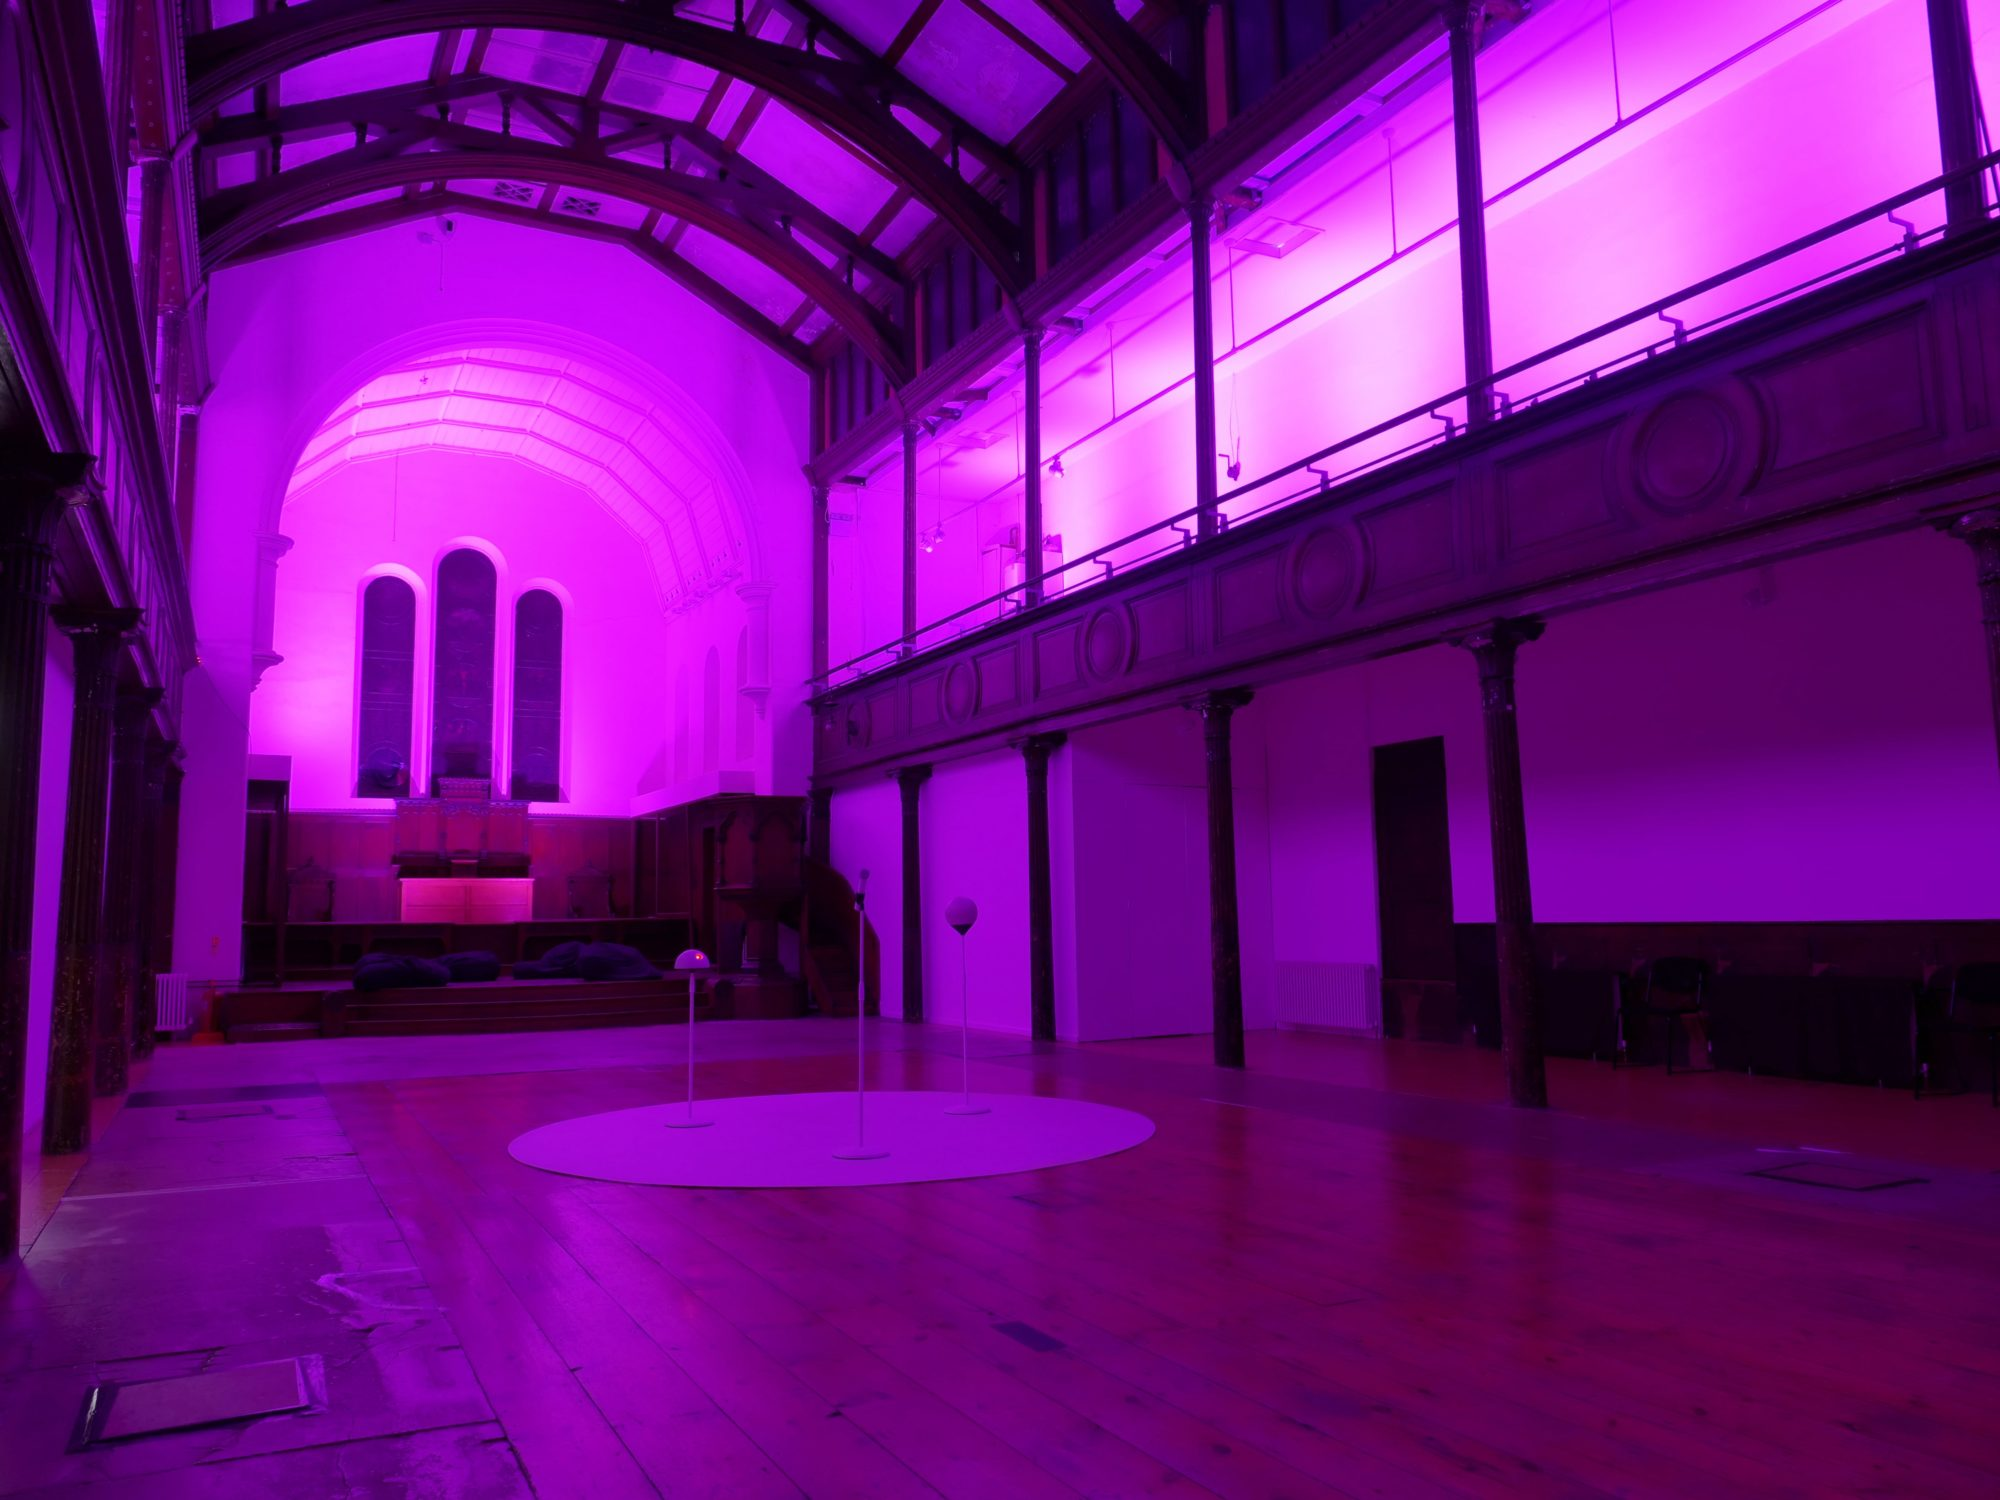 A large room bathed in pink light. A with circle in in the middle of the floor with three tall poles in the centre.